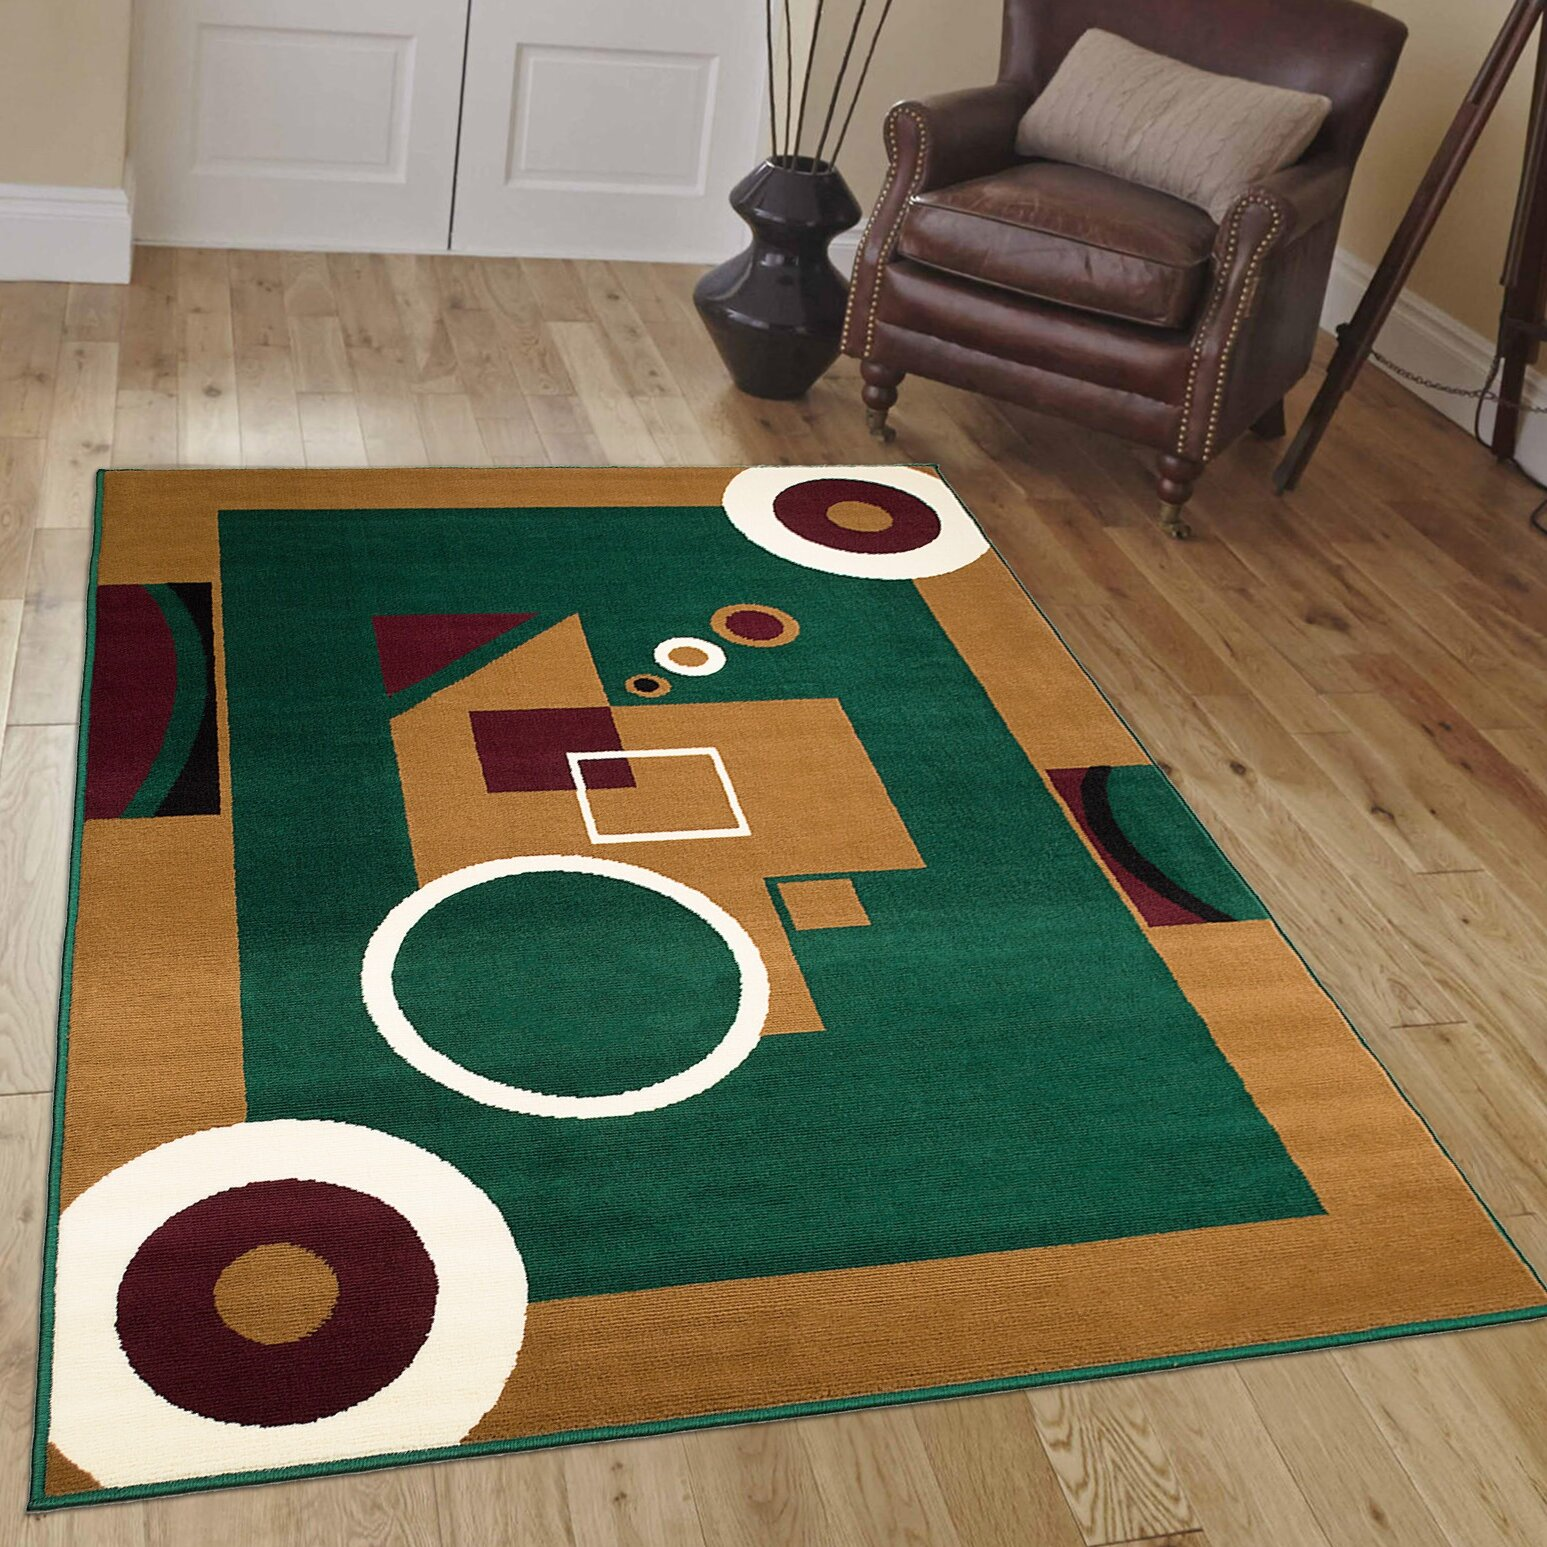 AllStar Rugs Hand-Woven Green/Brown Area Rug & Reviews